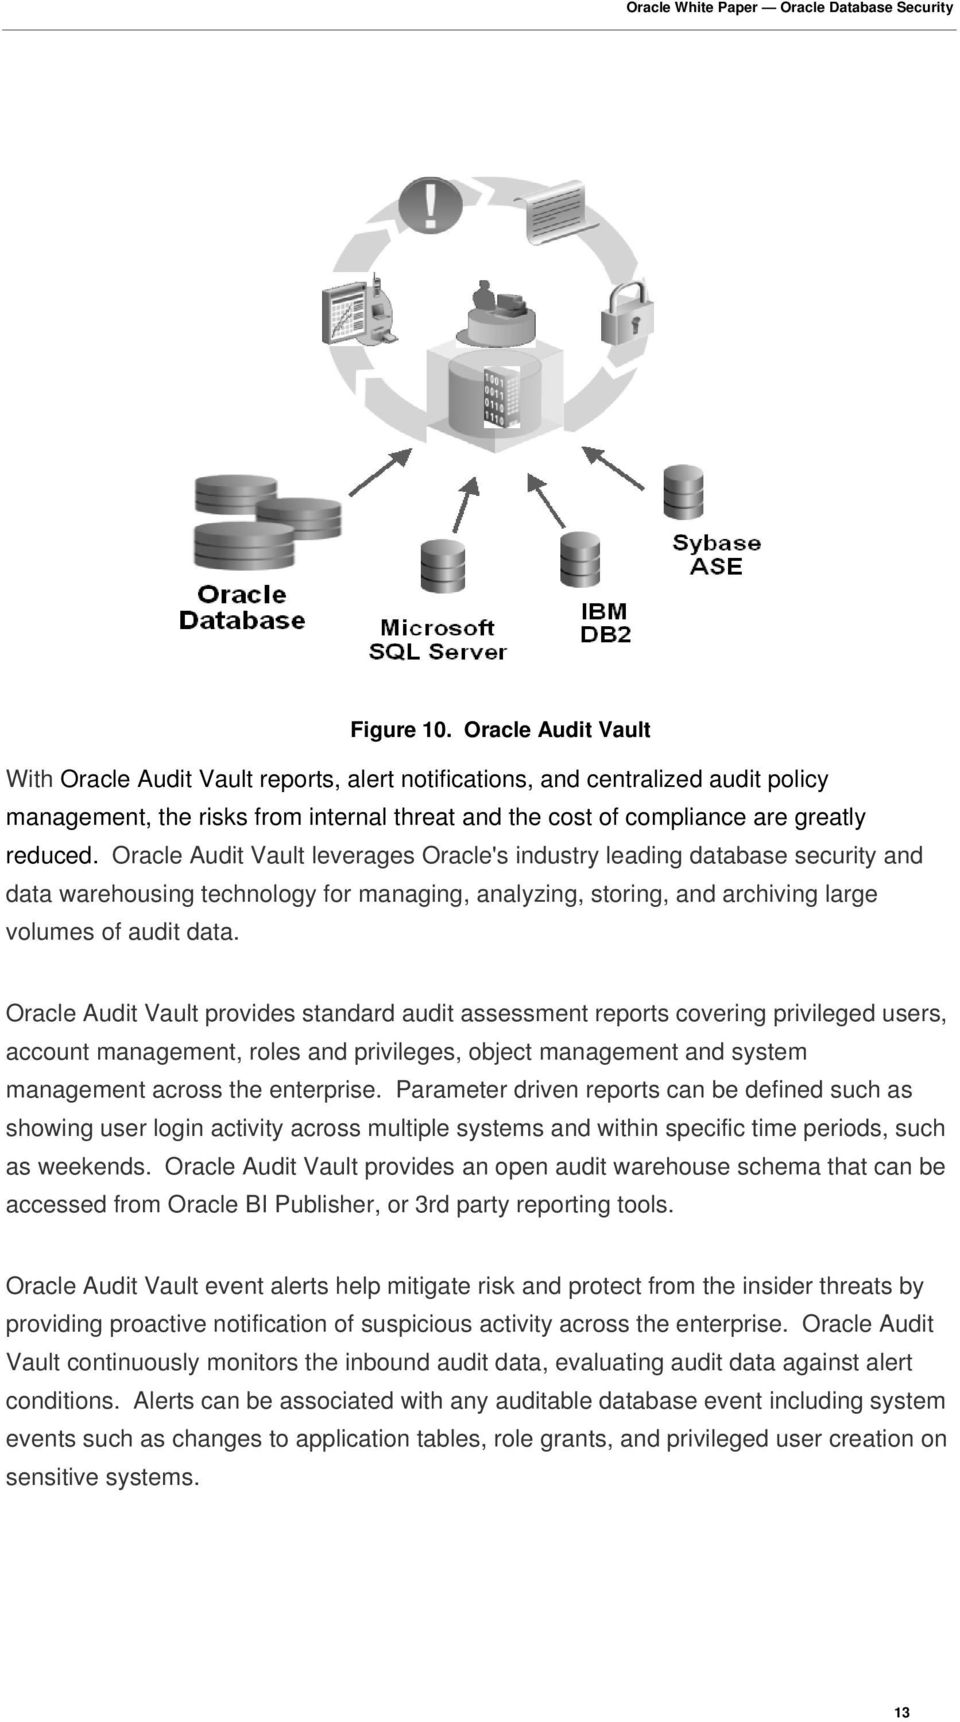 Oracle Audit Vault leverages Oracle's industry leading database security and data warehousing technology for managing, analyzing, storing, and archiving large volumes of audit data.